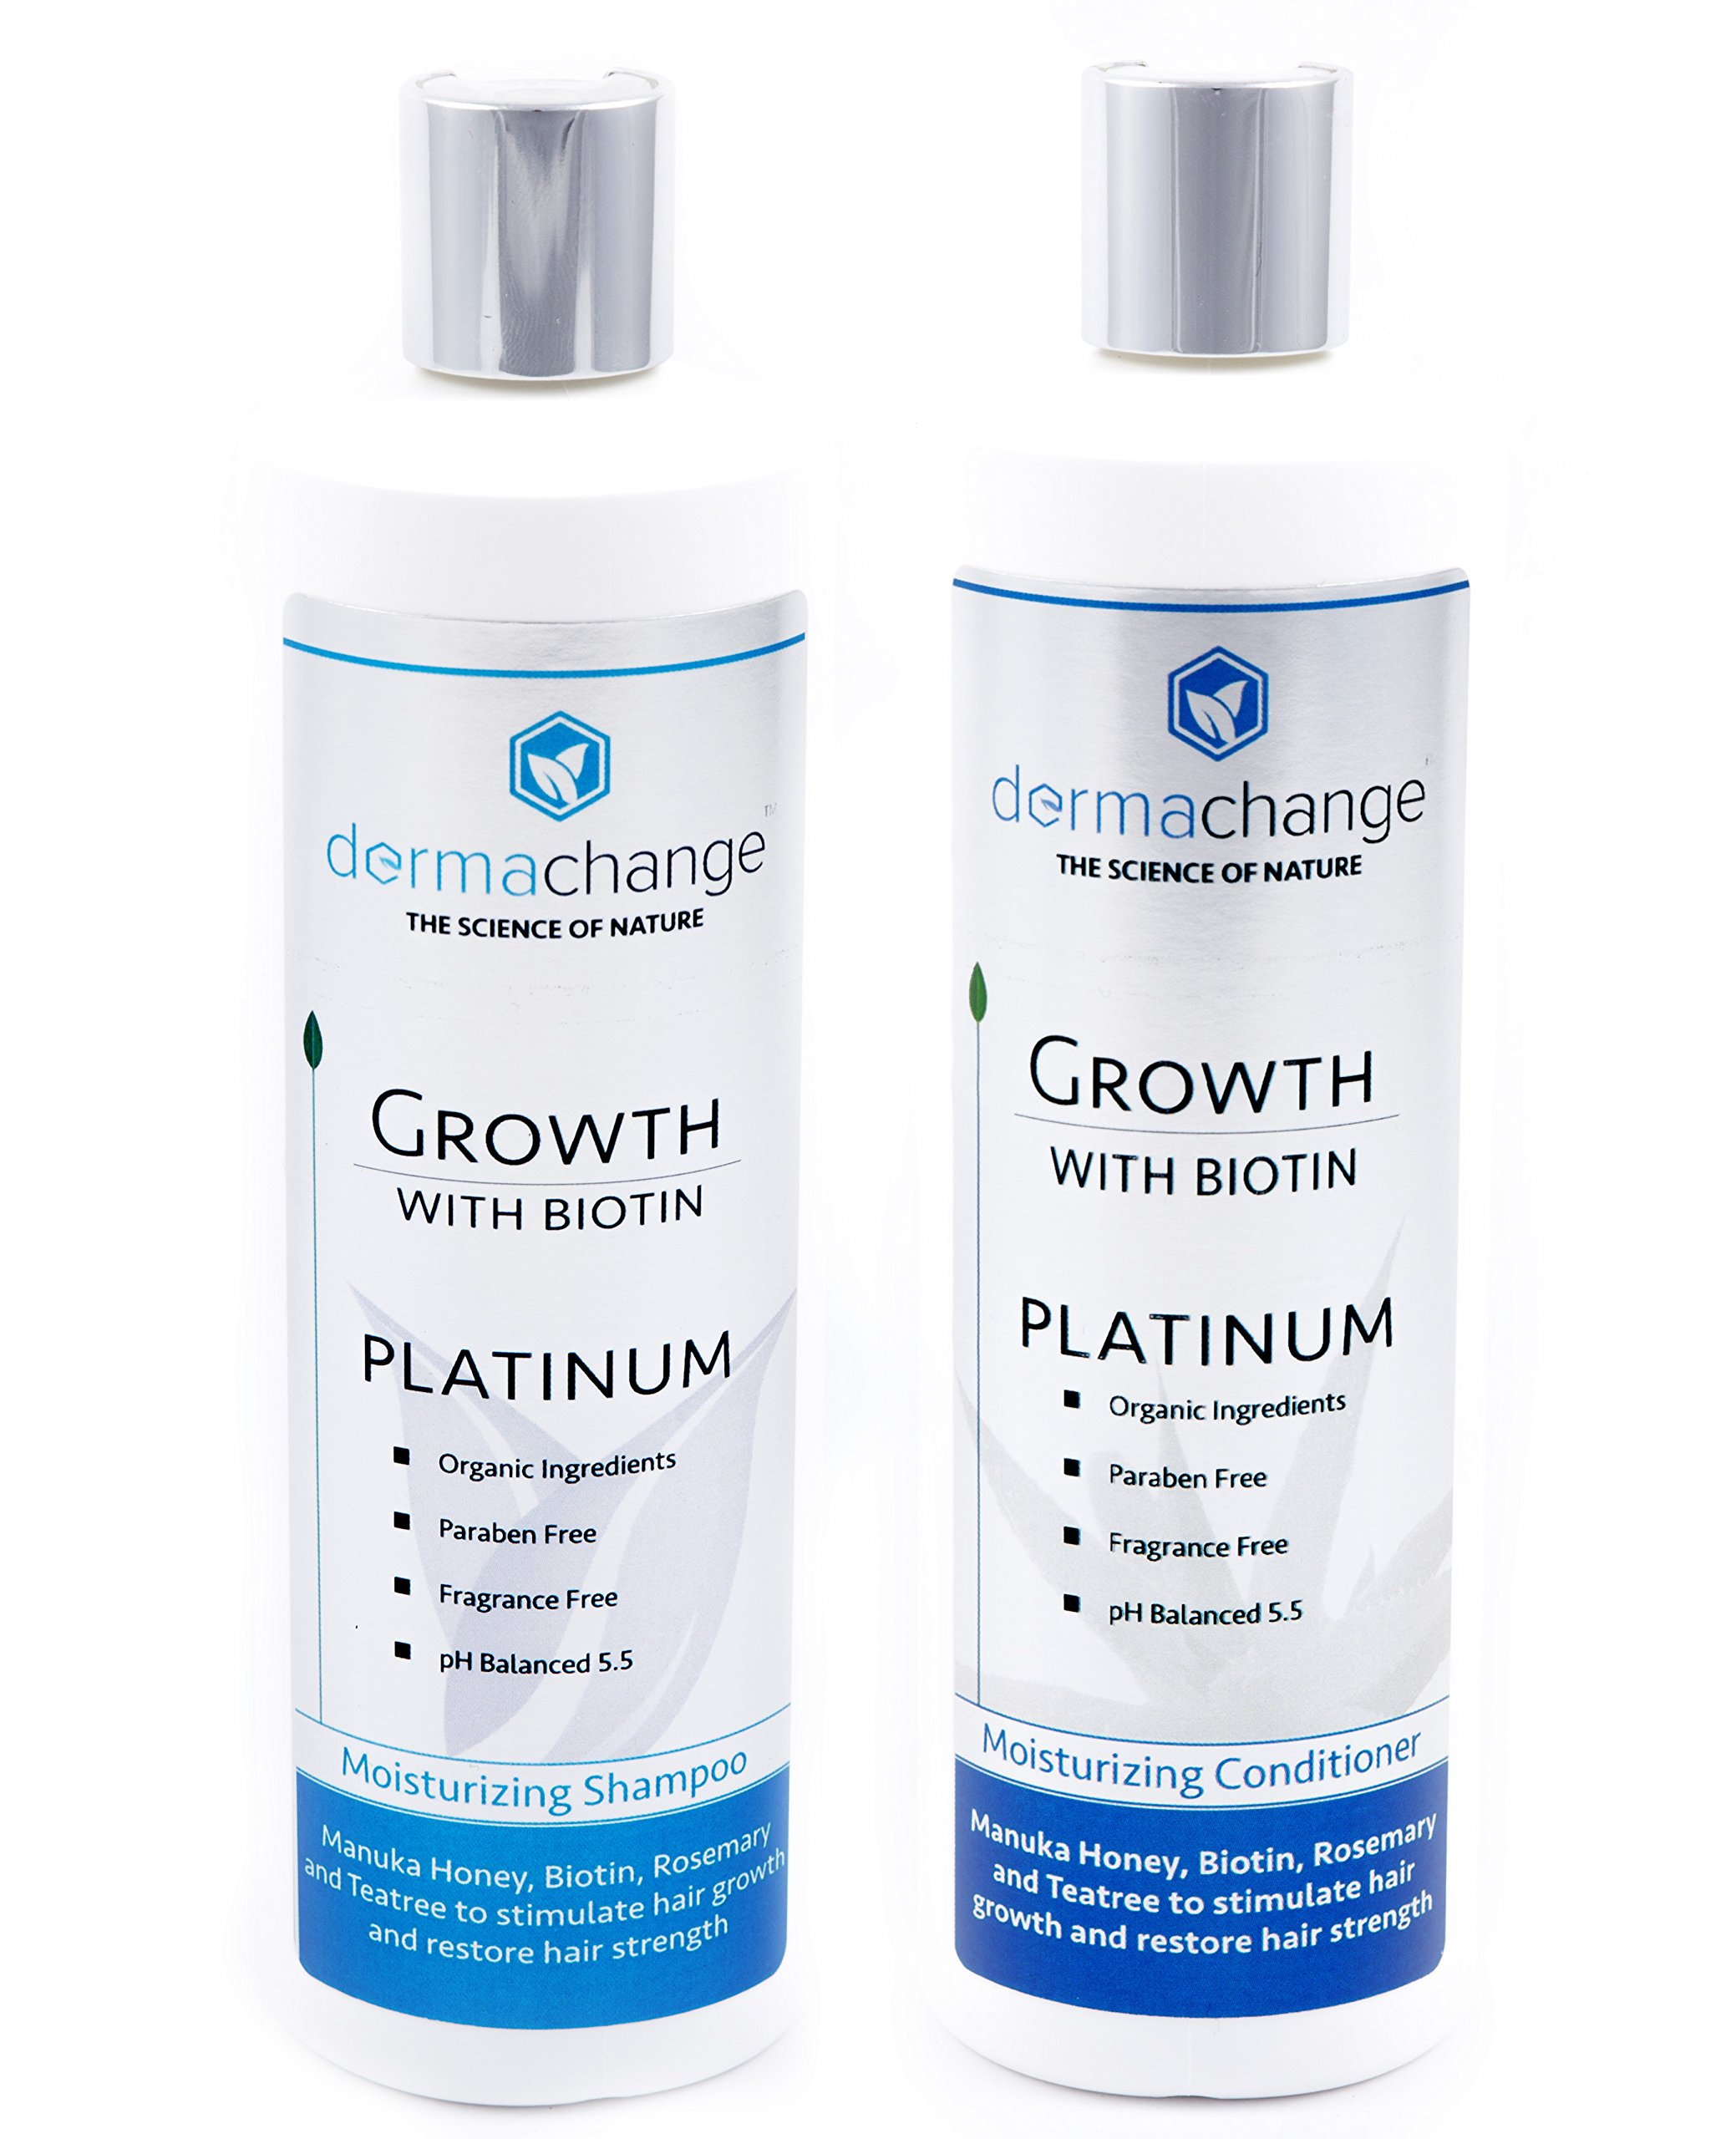 Hair Growth Organic Shampoo & Conditioner Set - With Biotin and Argan Oil - Supports Regrowth & Prevents Hair Loss - For Dry Damaged & Color-Treated Hair - Sulfate & Paraben Free (16oz) - Made in USA